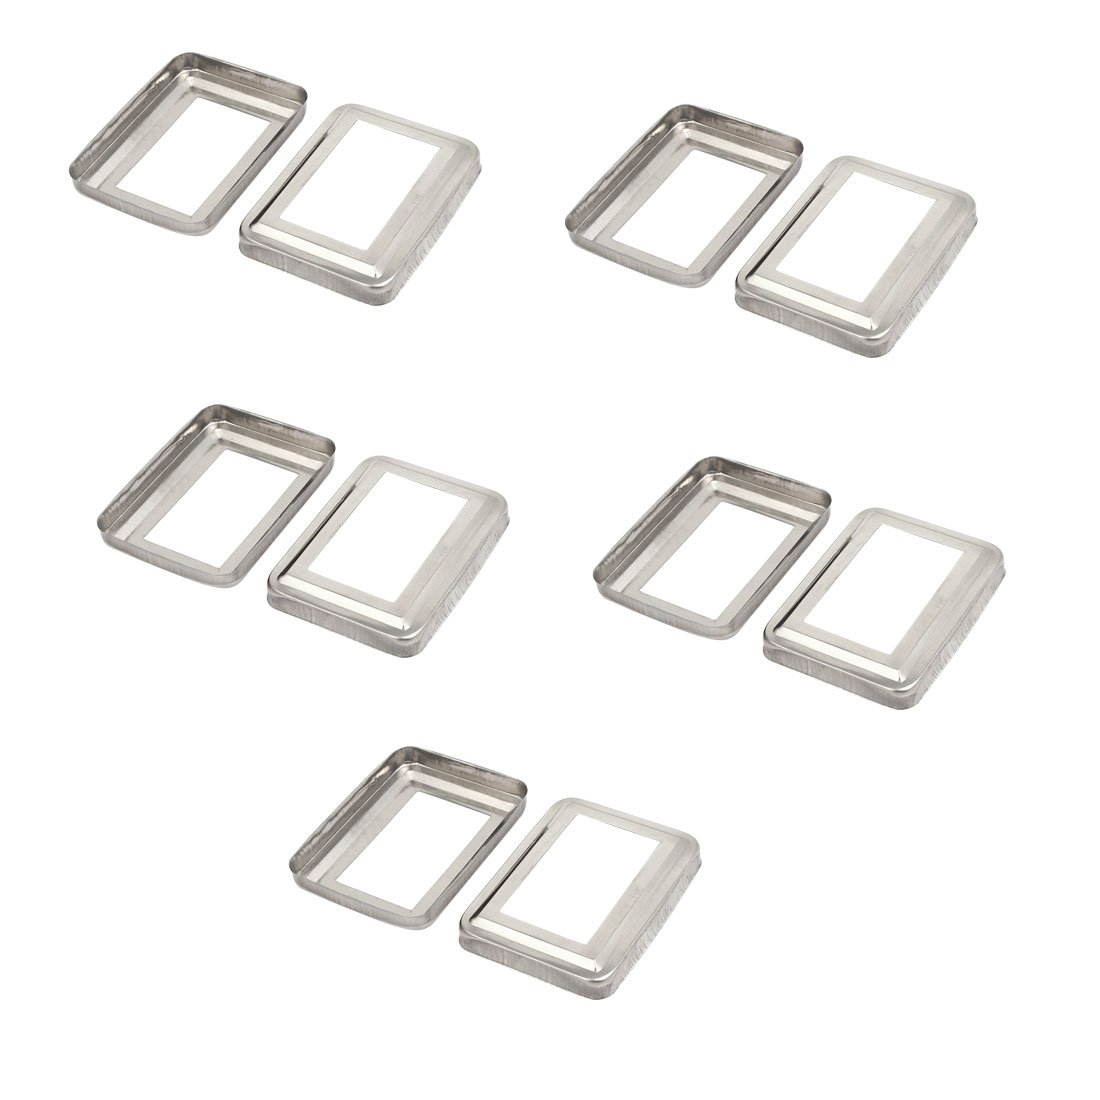 uxcell 10pcs Ladder Handrail Hand Rail 75mm x 45mm Post Plate Cover 304 Stainless Steel